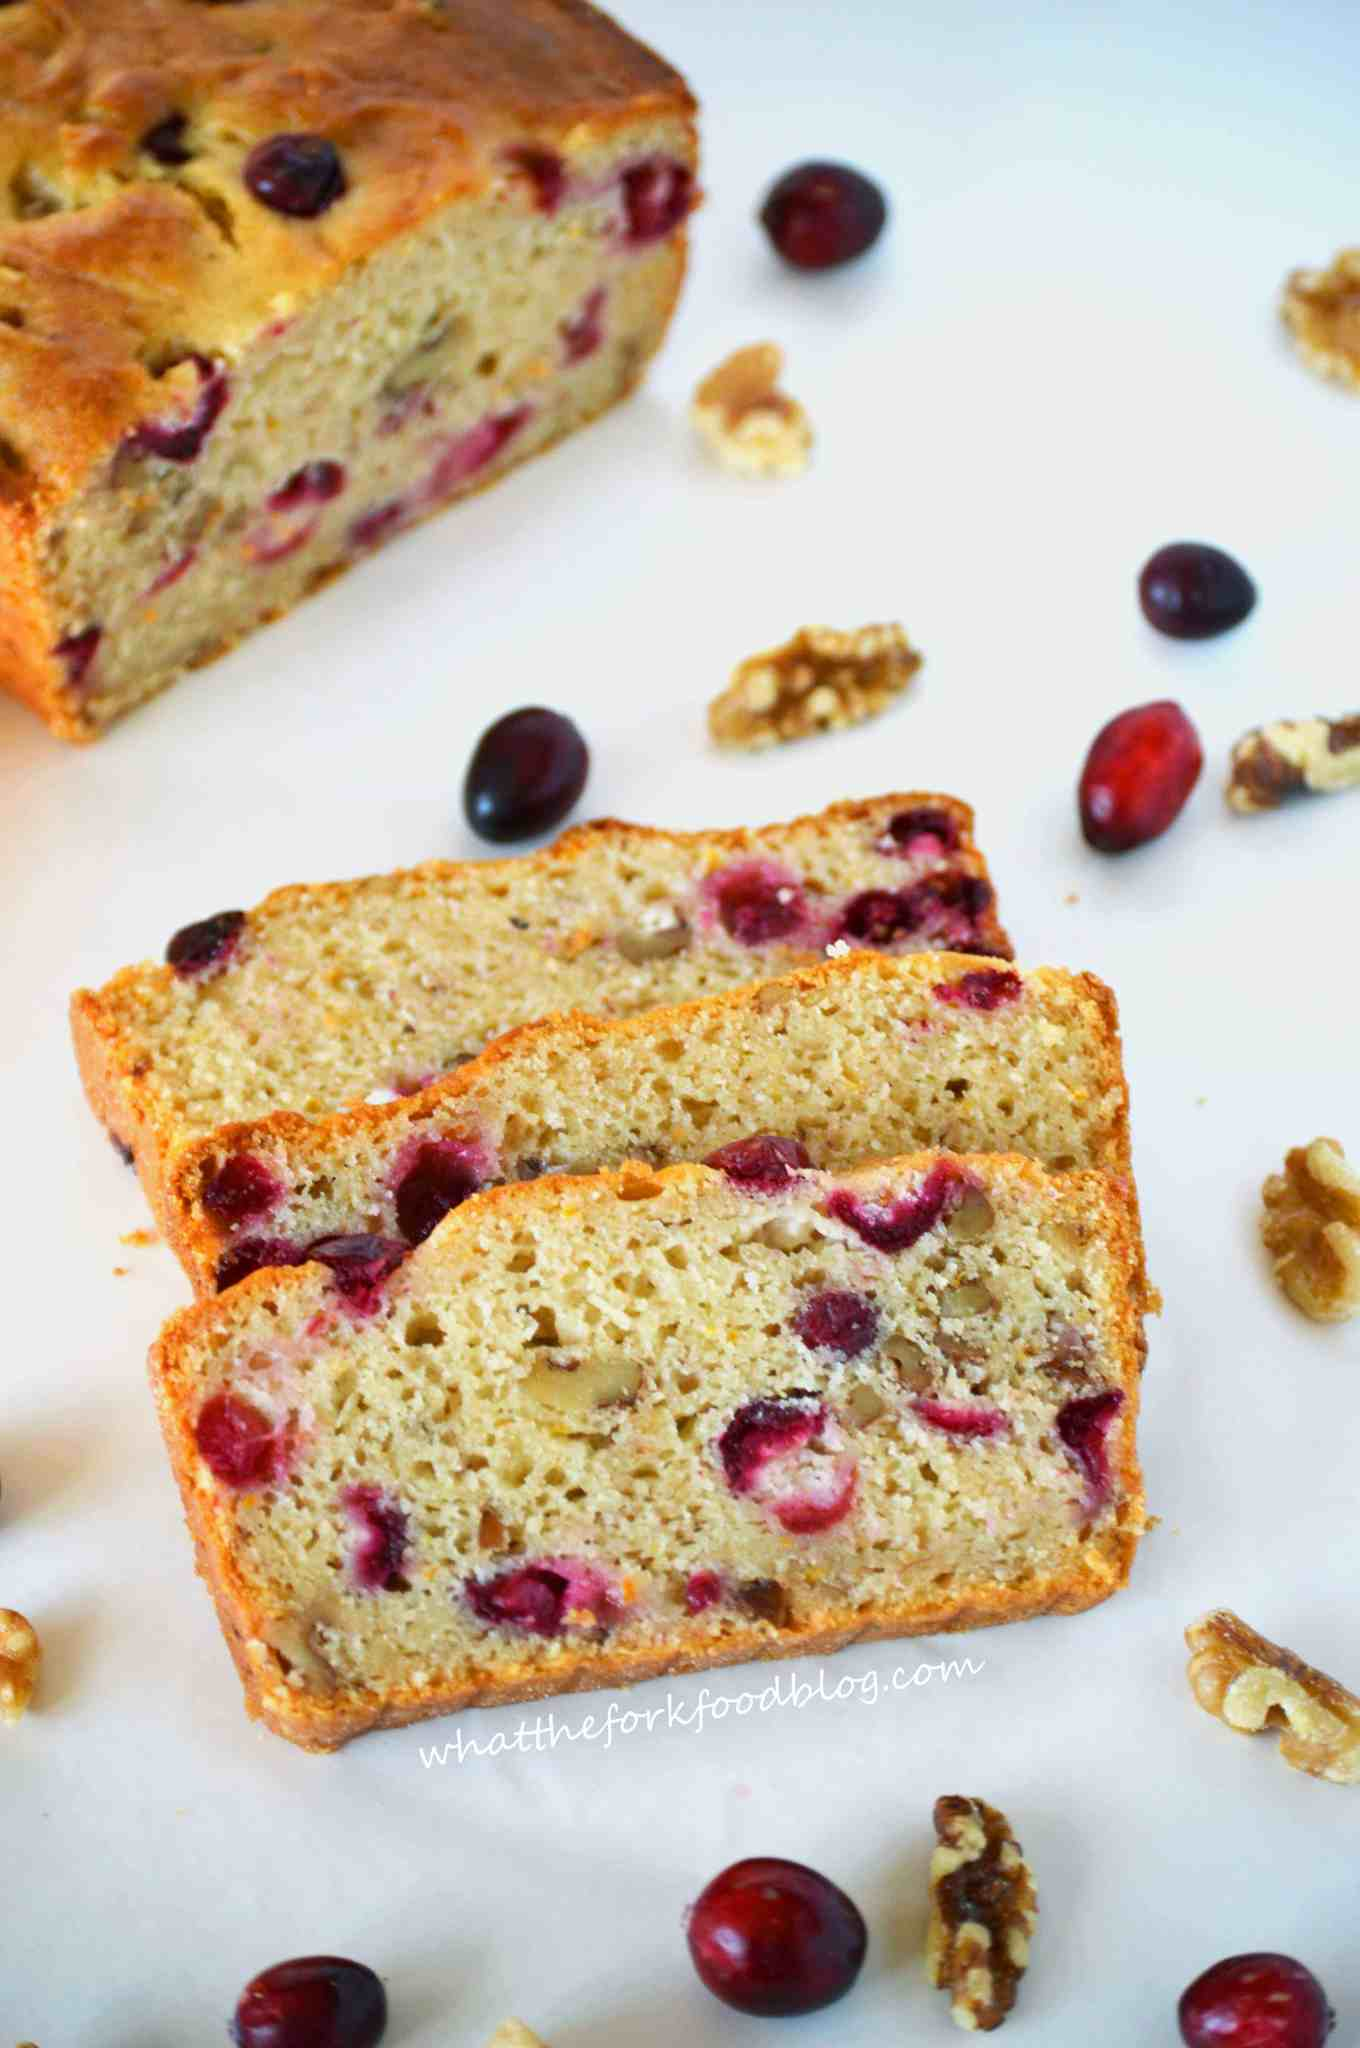 Cranberry Orange Bread from What the Fork Food Blog featured on Belle of the Kitchen